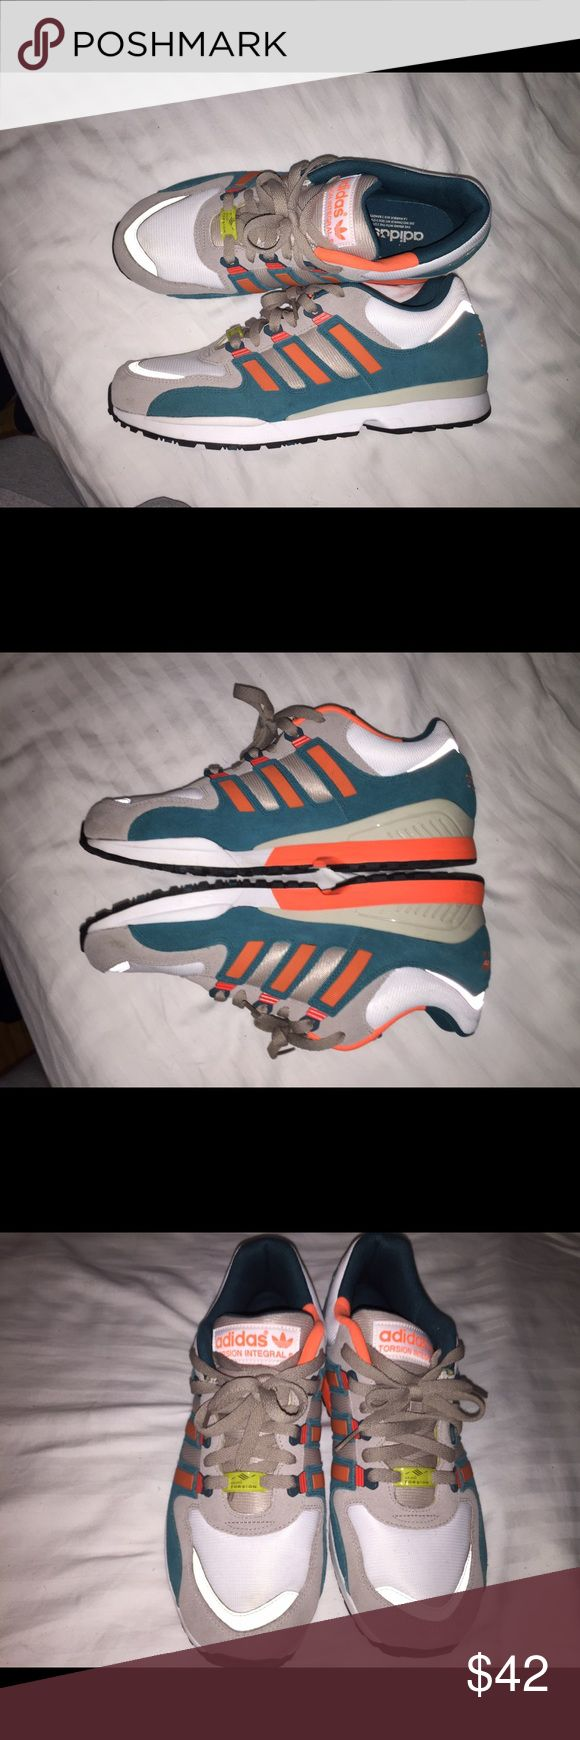 Adidas Torsion 9.5/10 condition. Classic adidas runner torsion Adidas Shoes Sneakers